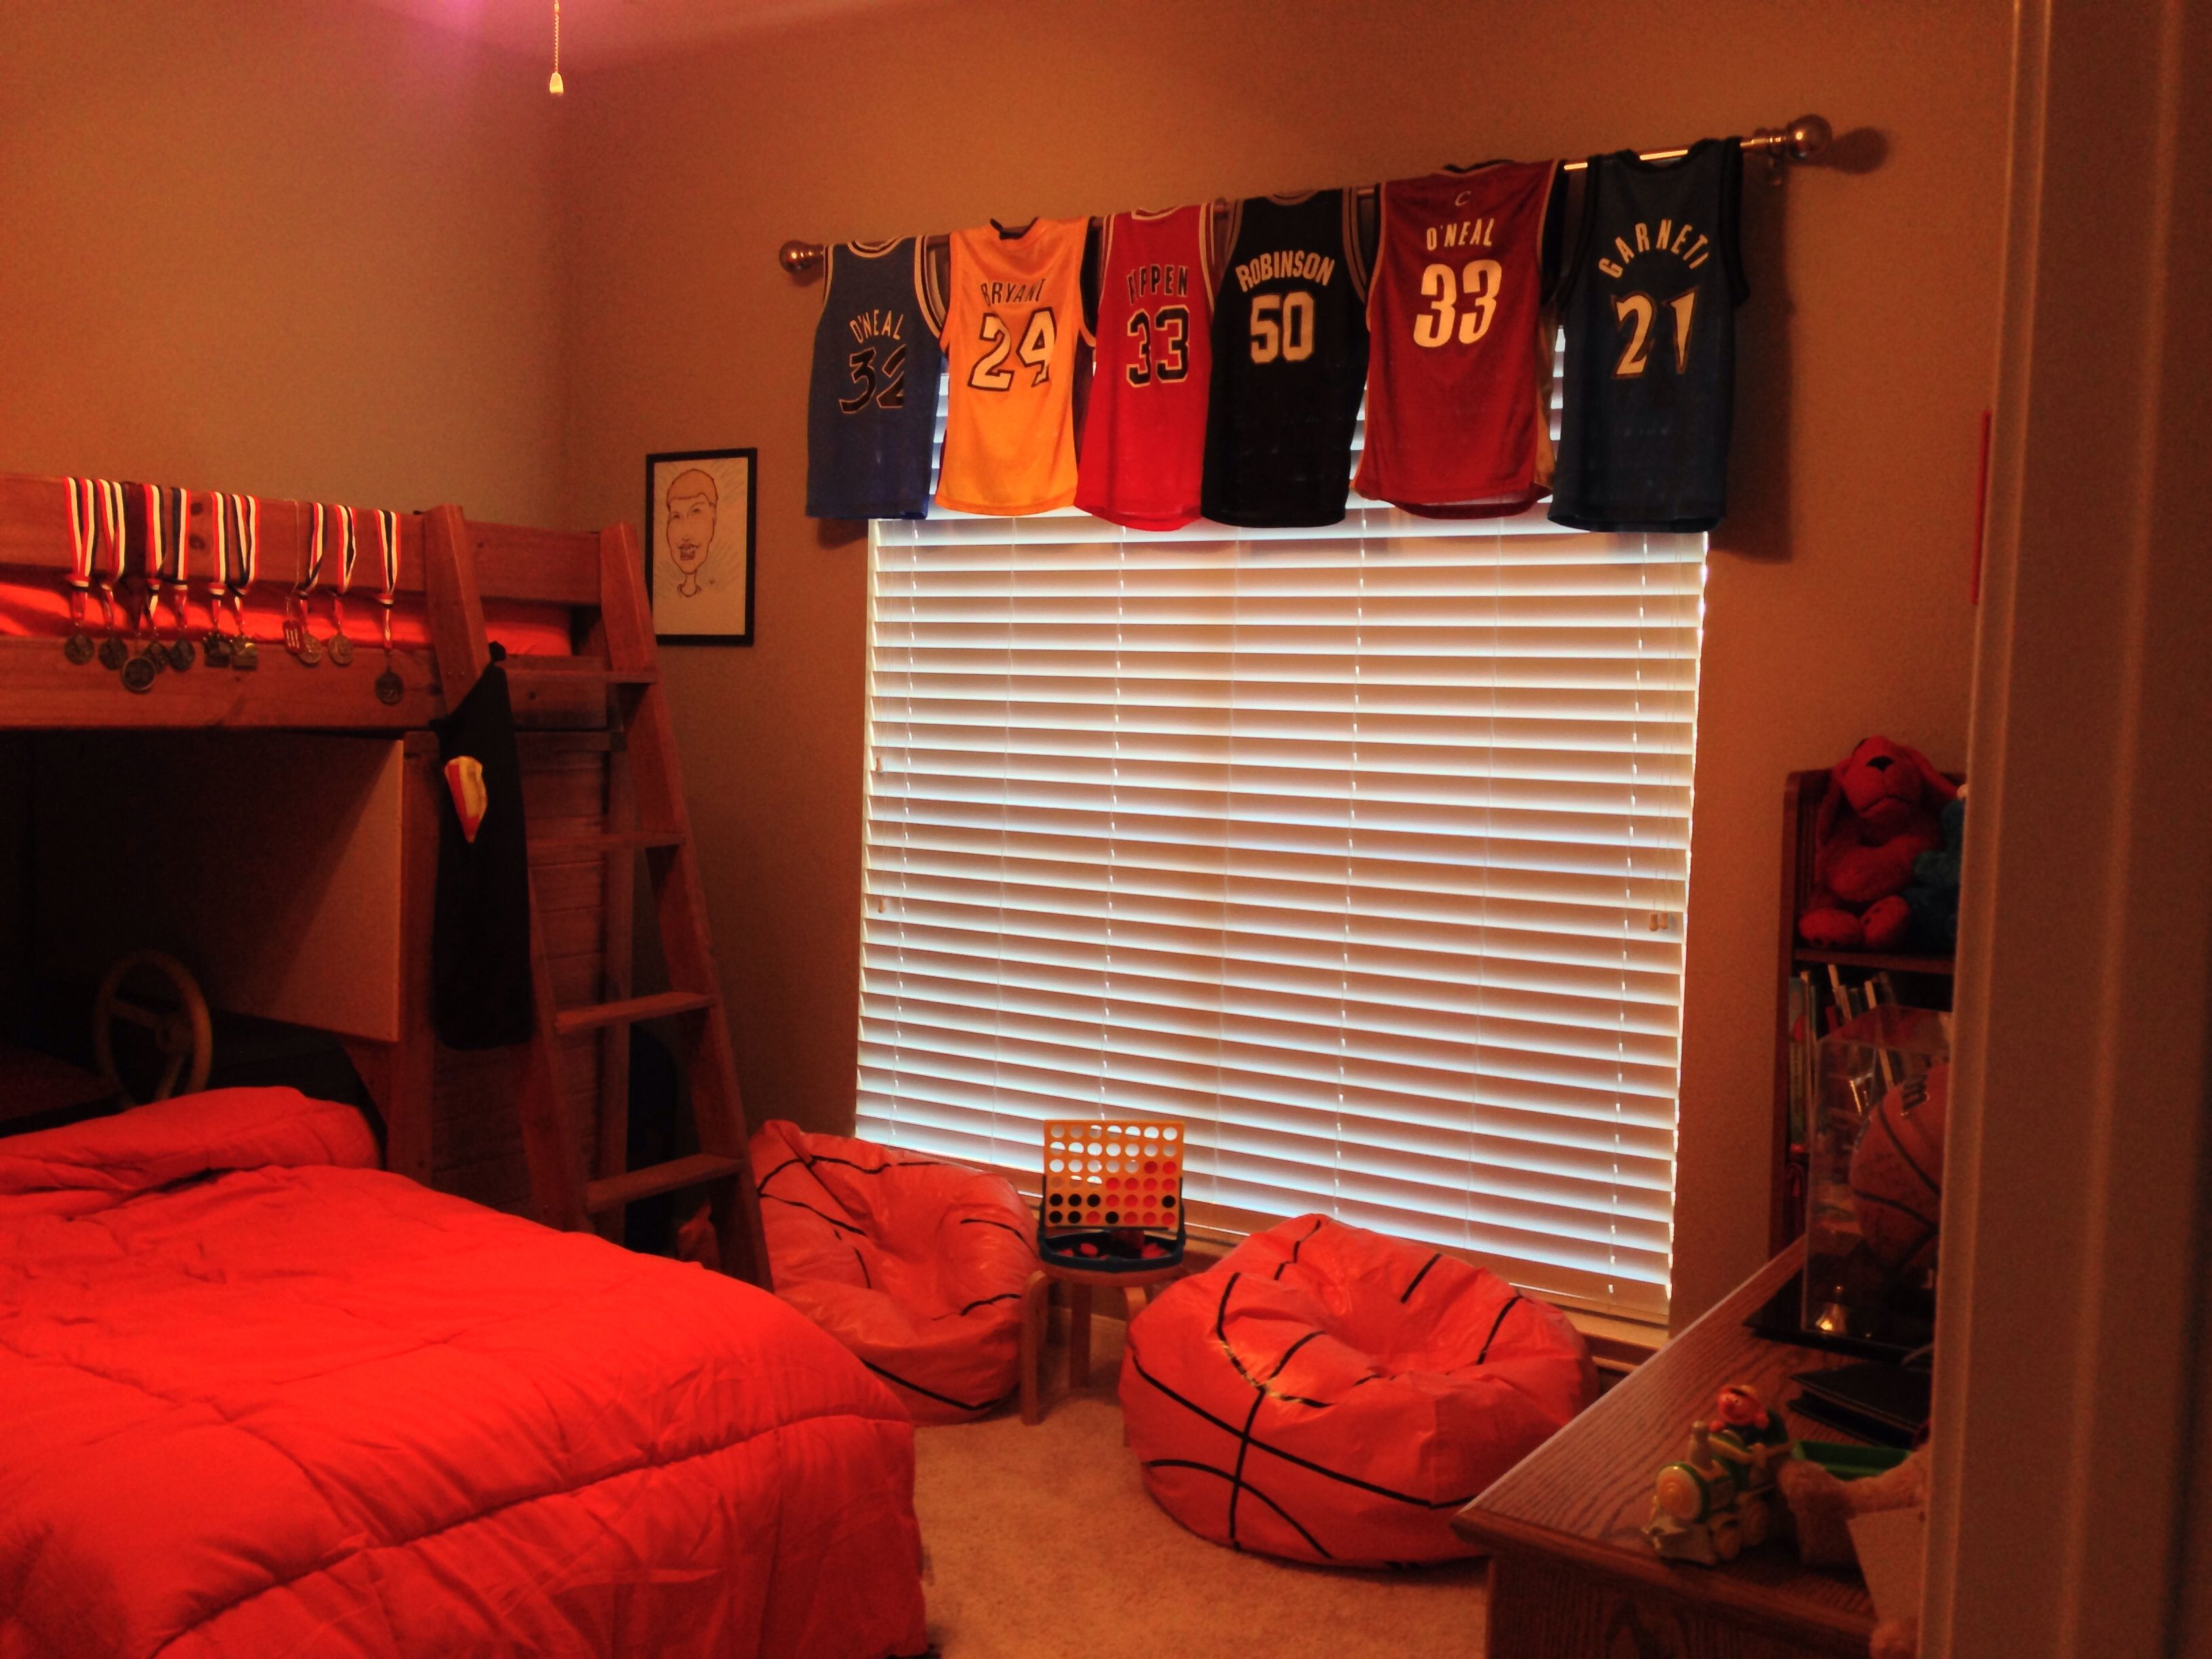 Boys basketball bedroom ideas - Basketball Bedroom Curtains Youth Medium Sized Jerseys From Ebay